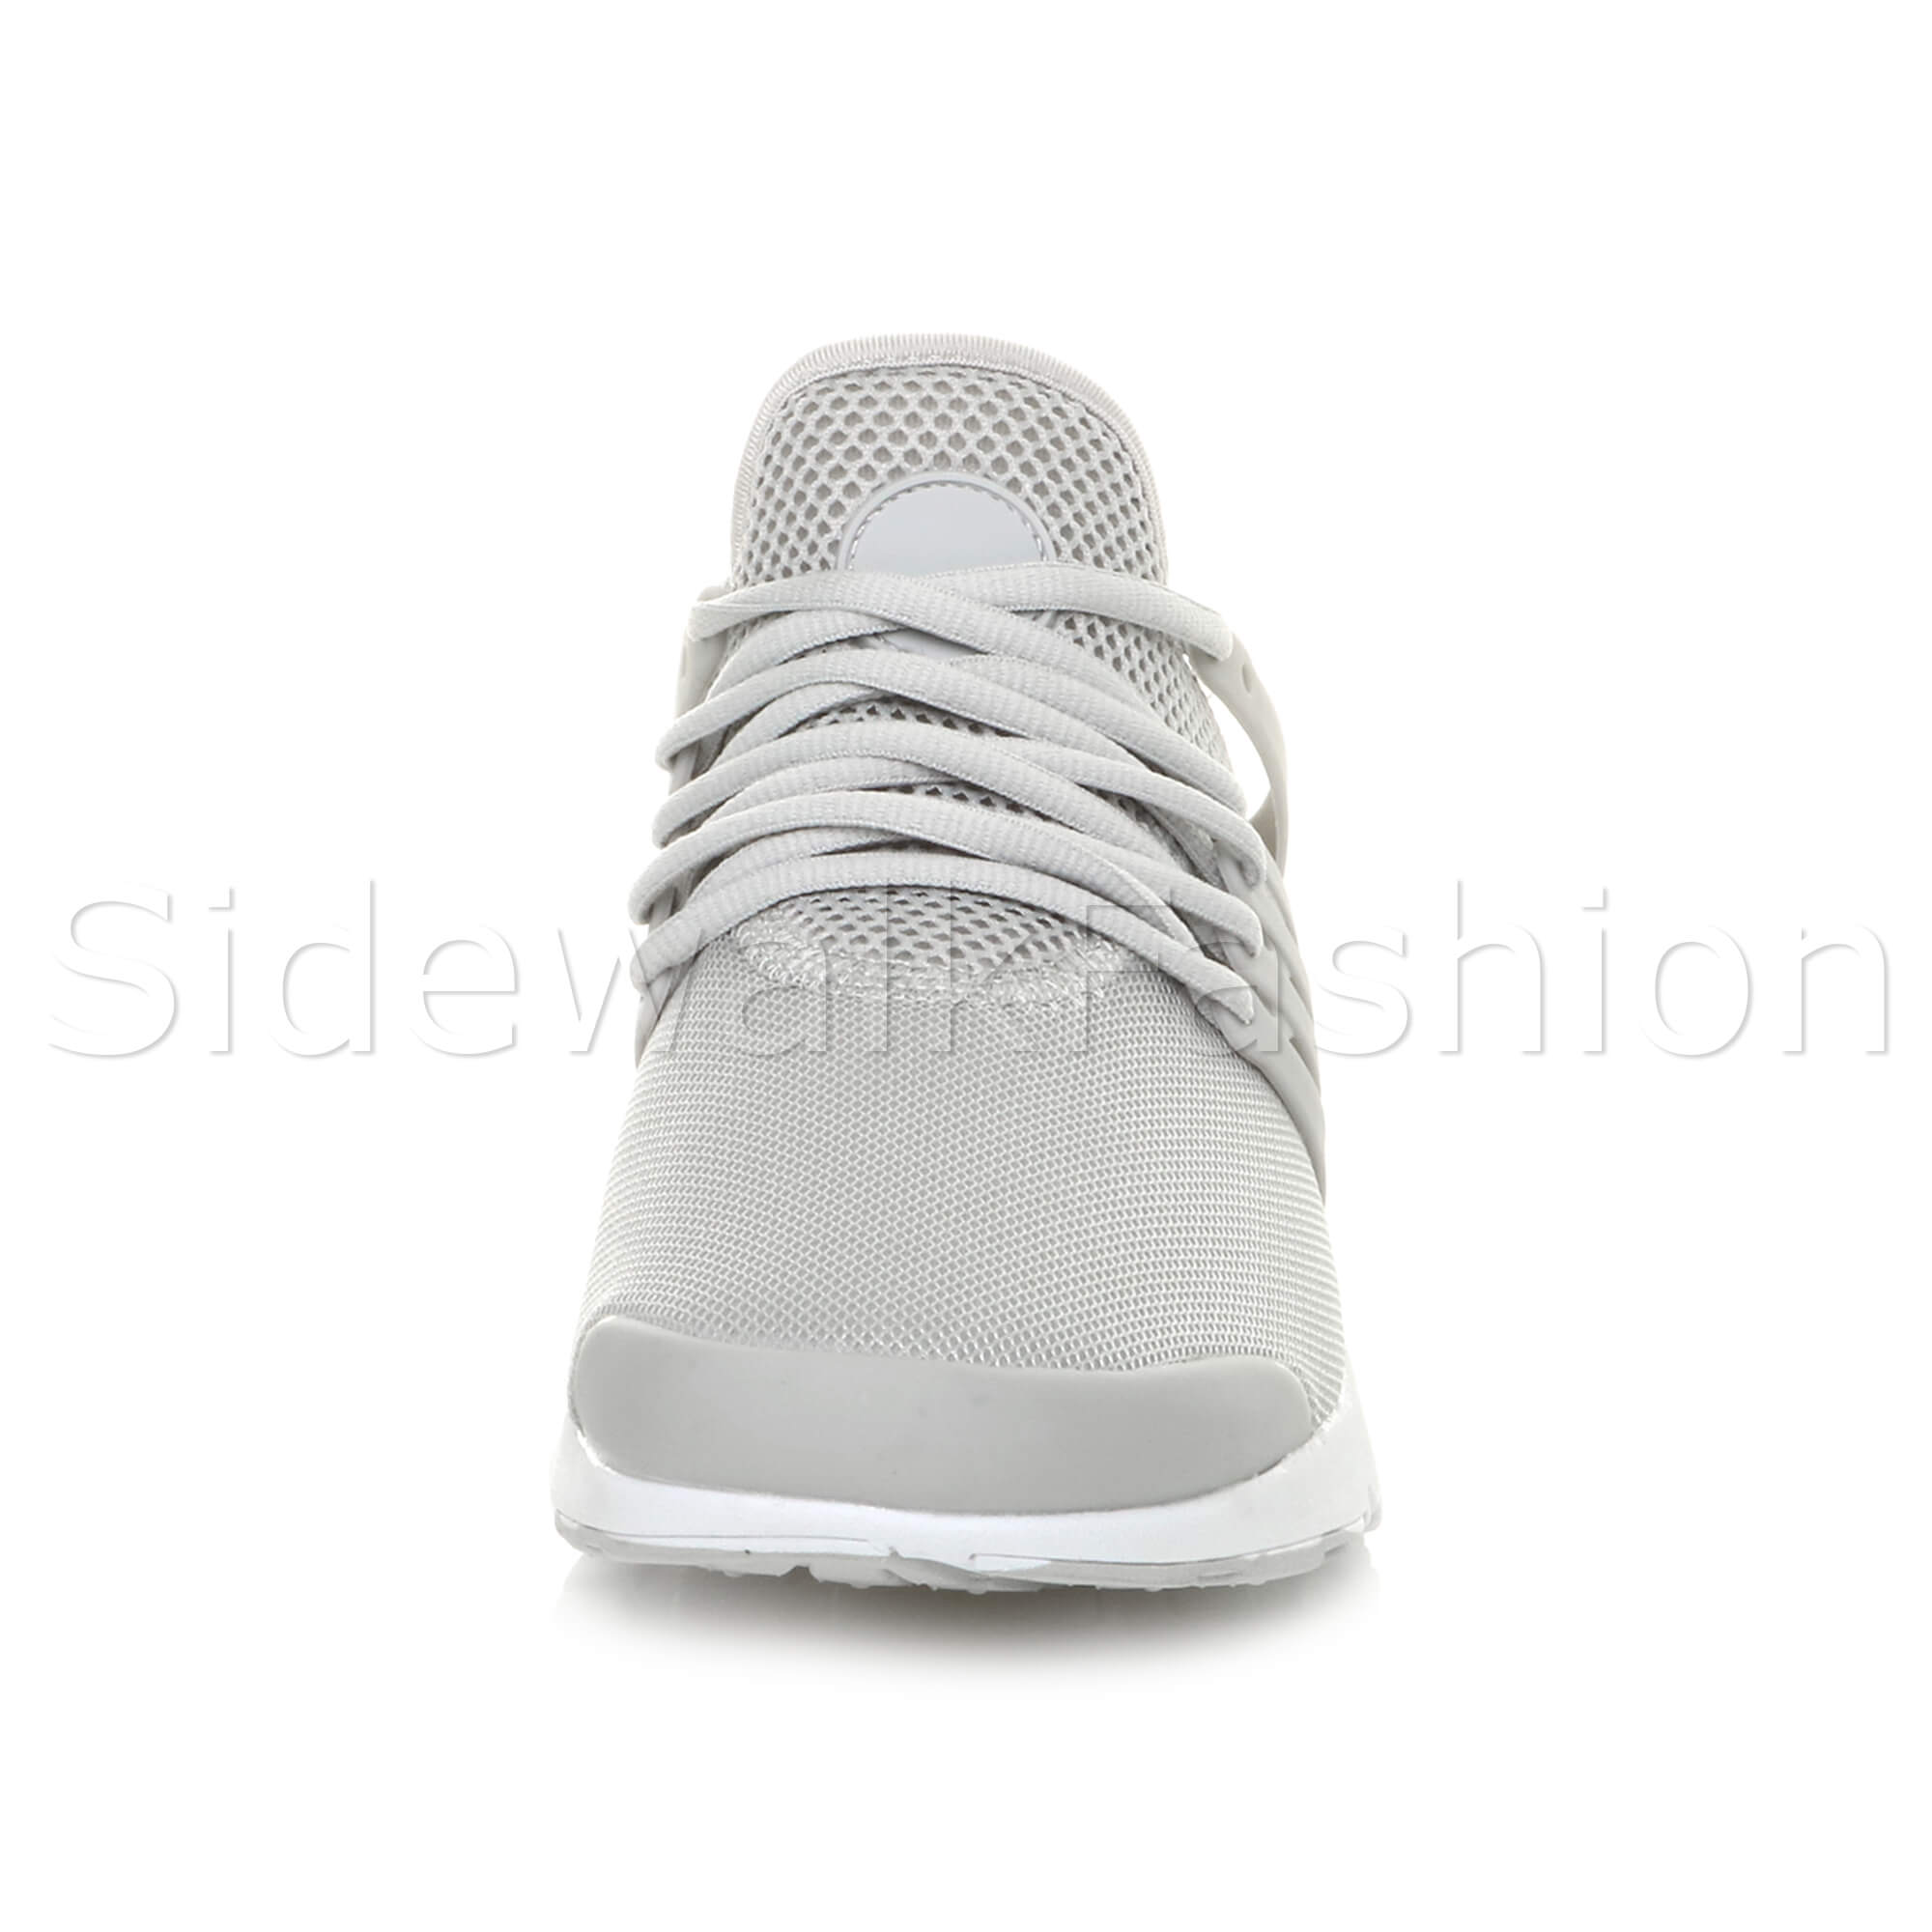 Mens-lace-up-sports-casual-low-top-gym-running-flexible-sneakers-trainers-size miniatuur 15